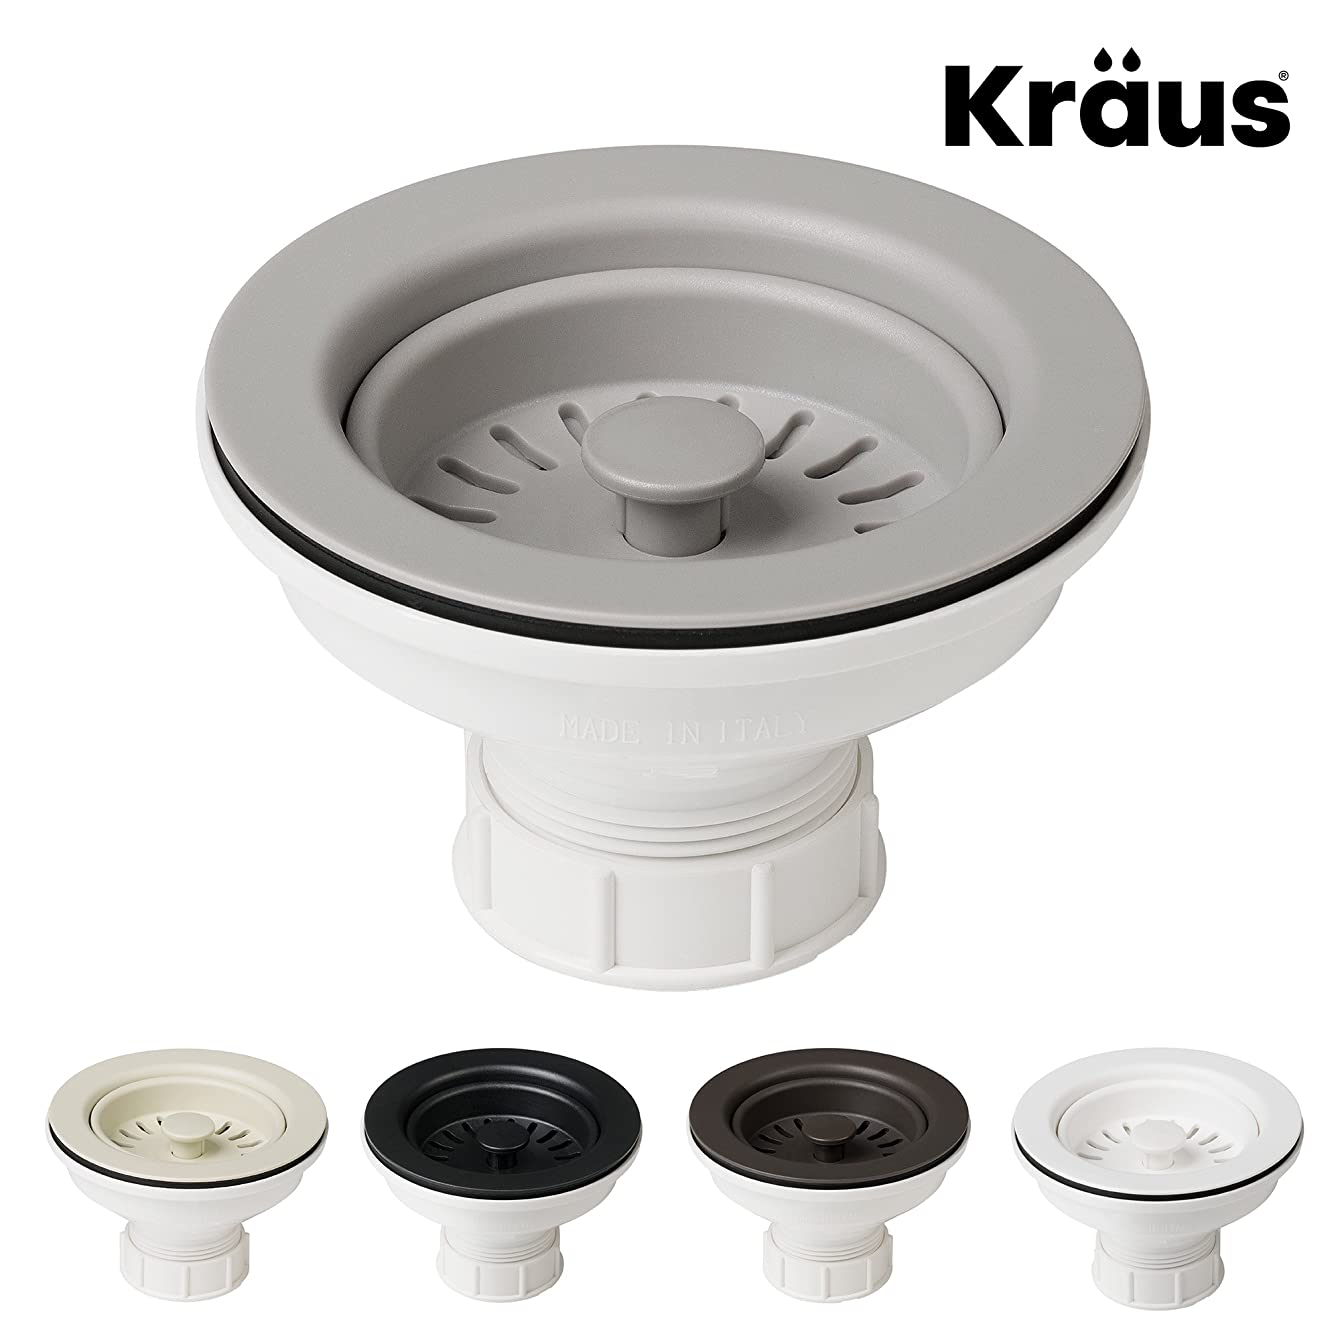 Kraus Kitchen Sink Strainer for 3.5-Inch Drain Openings in Grey